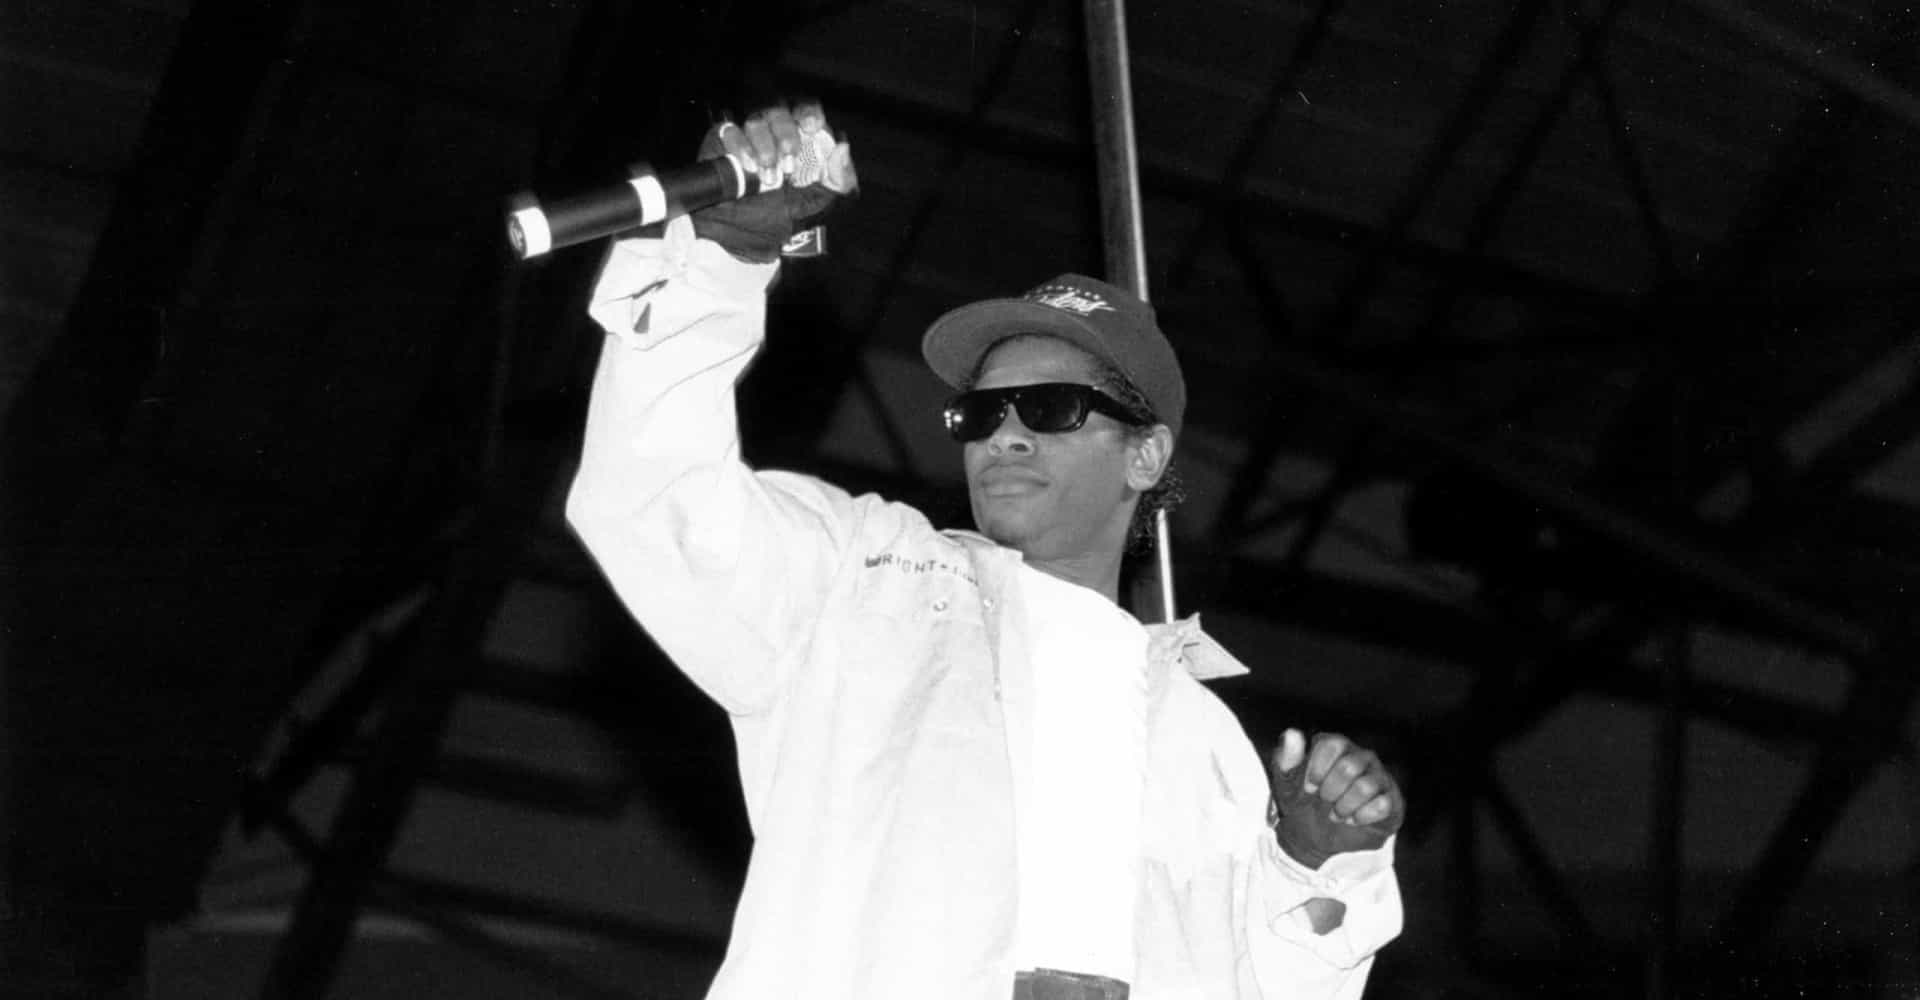 Remembering Eazy-E and other artists who died young